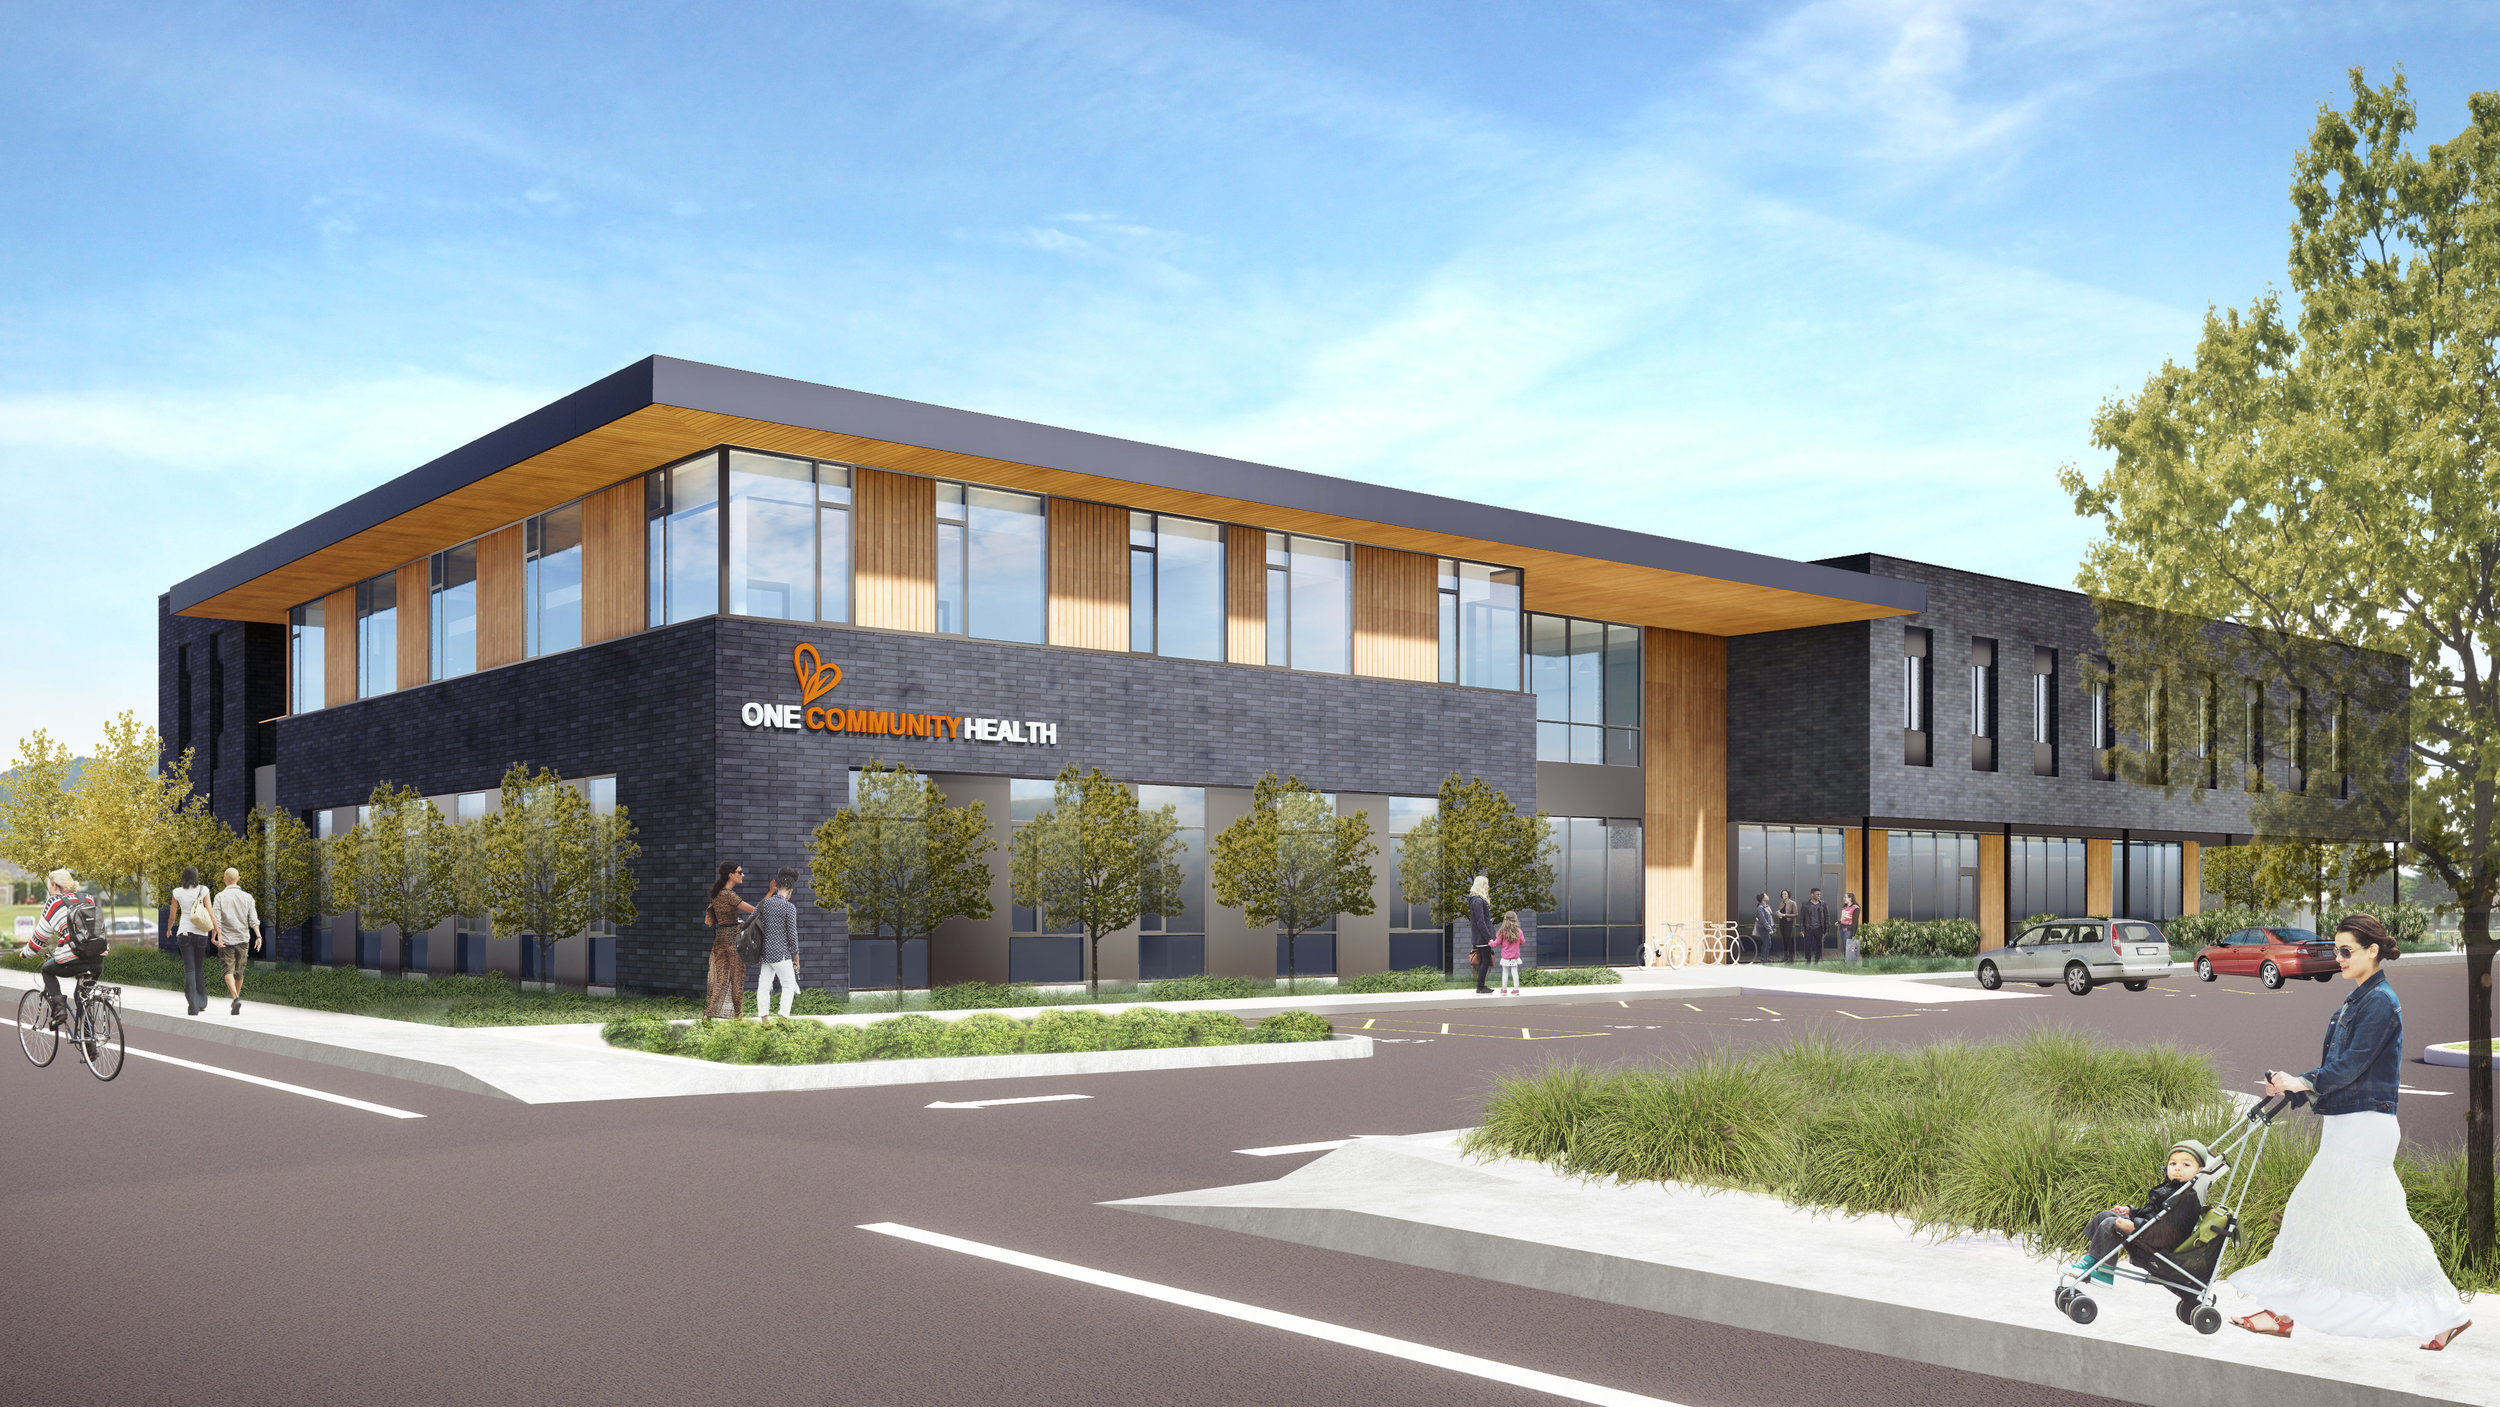 A rendering of the future One Community Health, replacing the current health center in Hood River.